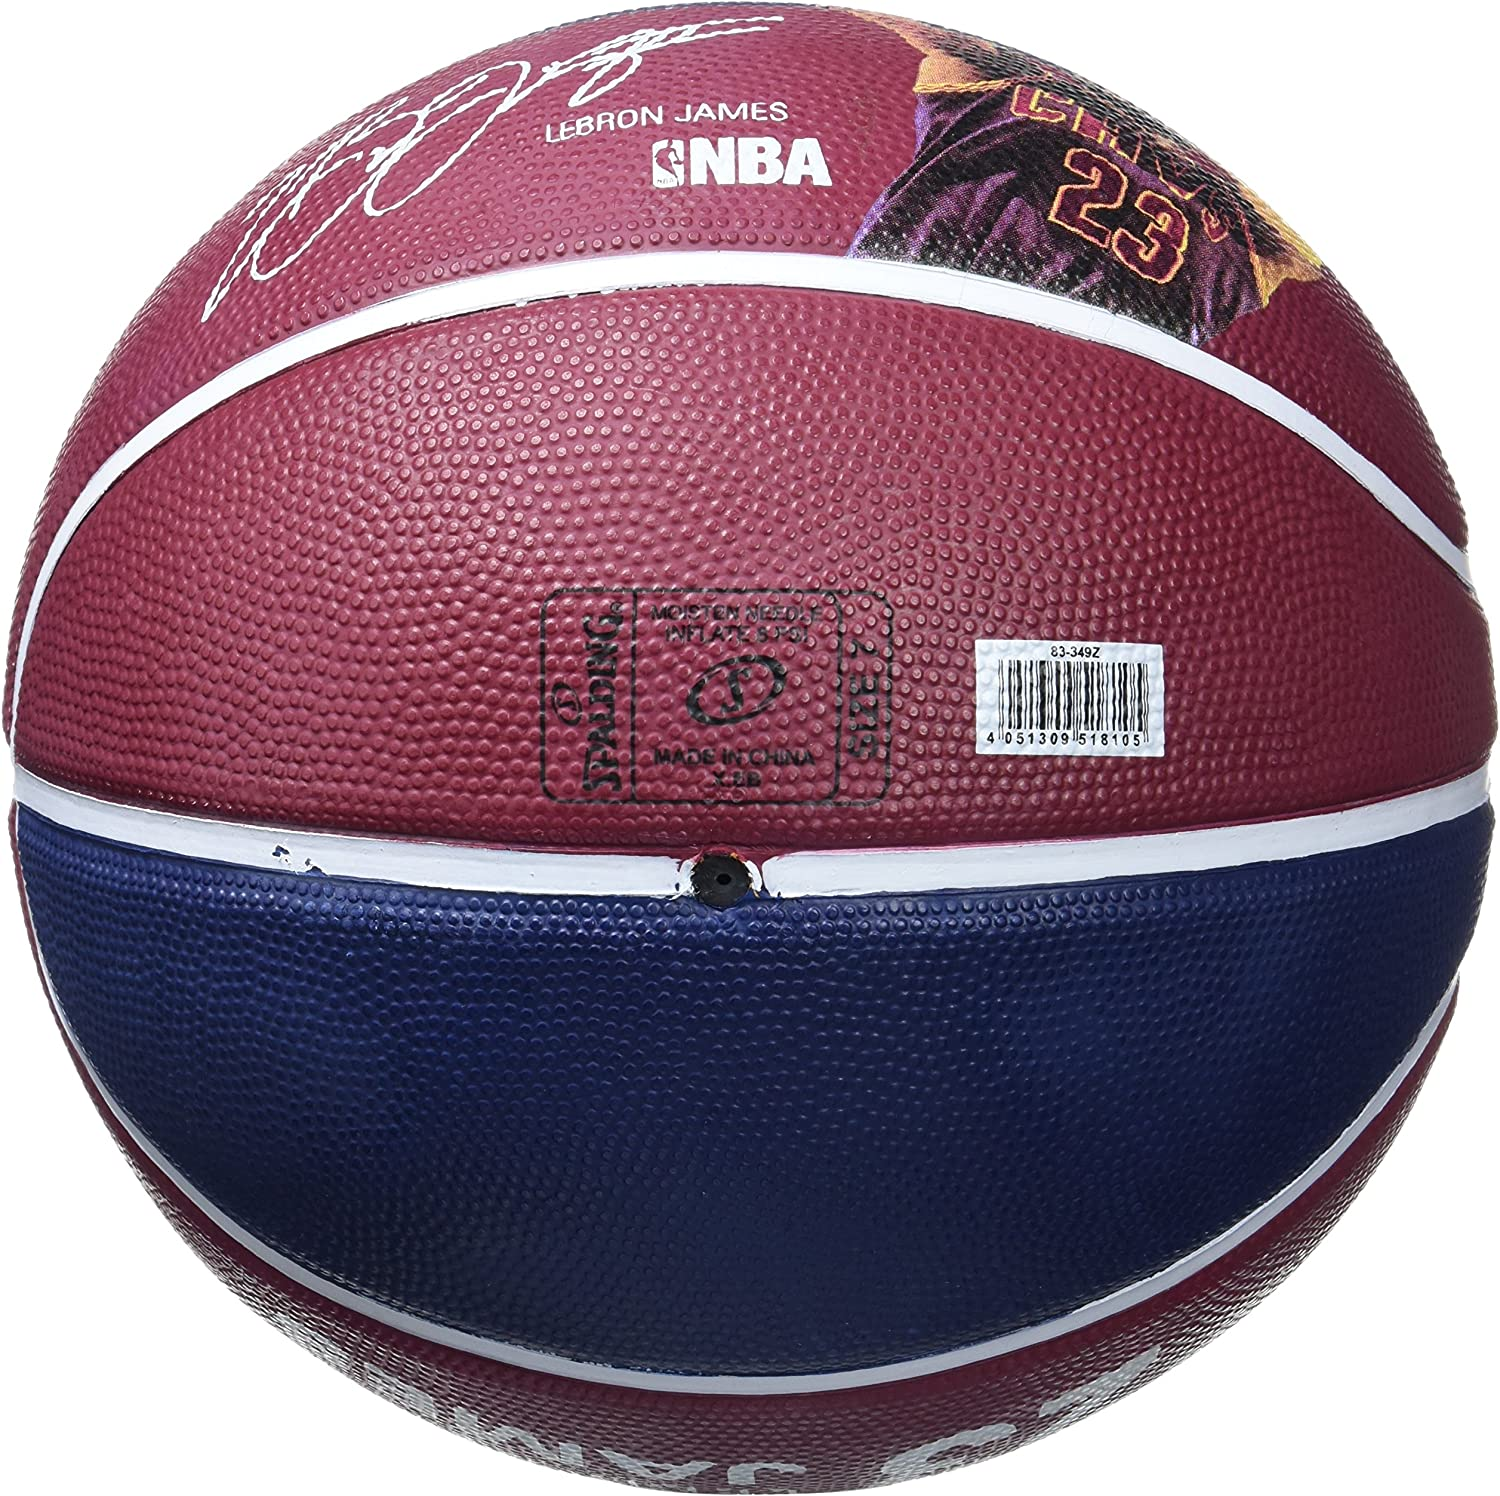 Spalding NBA Player Lebron James Sz.7 83-349Z Balón de Baloncesto ...